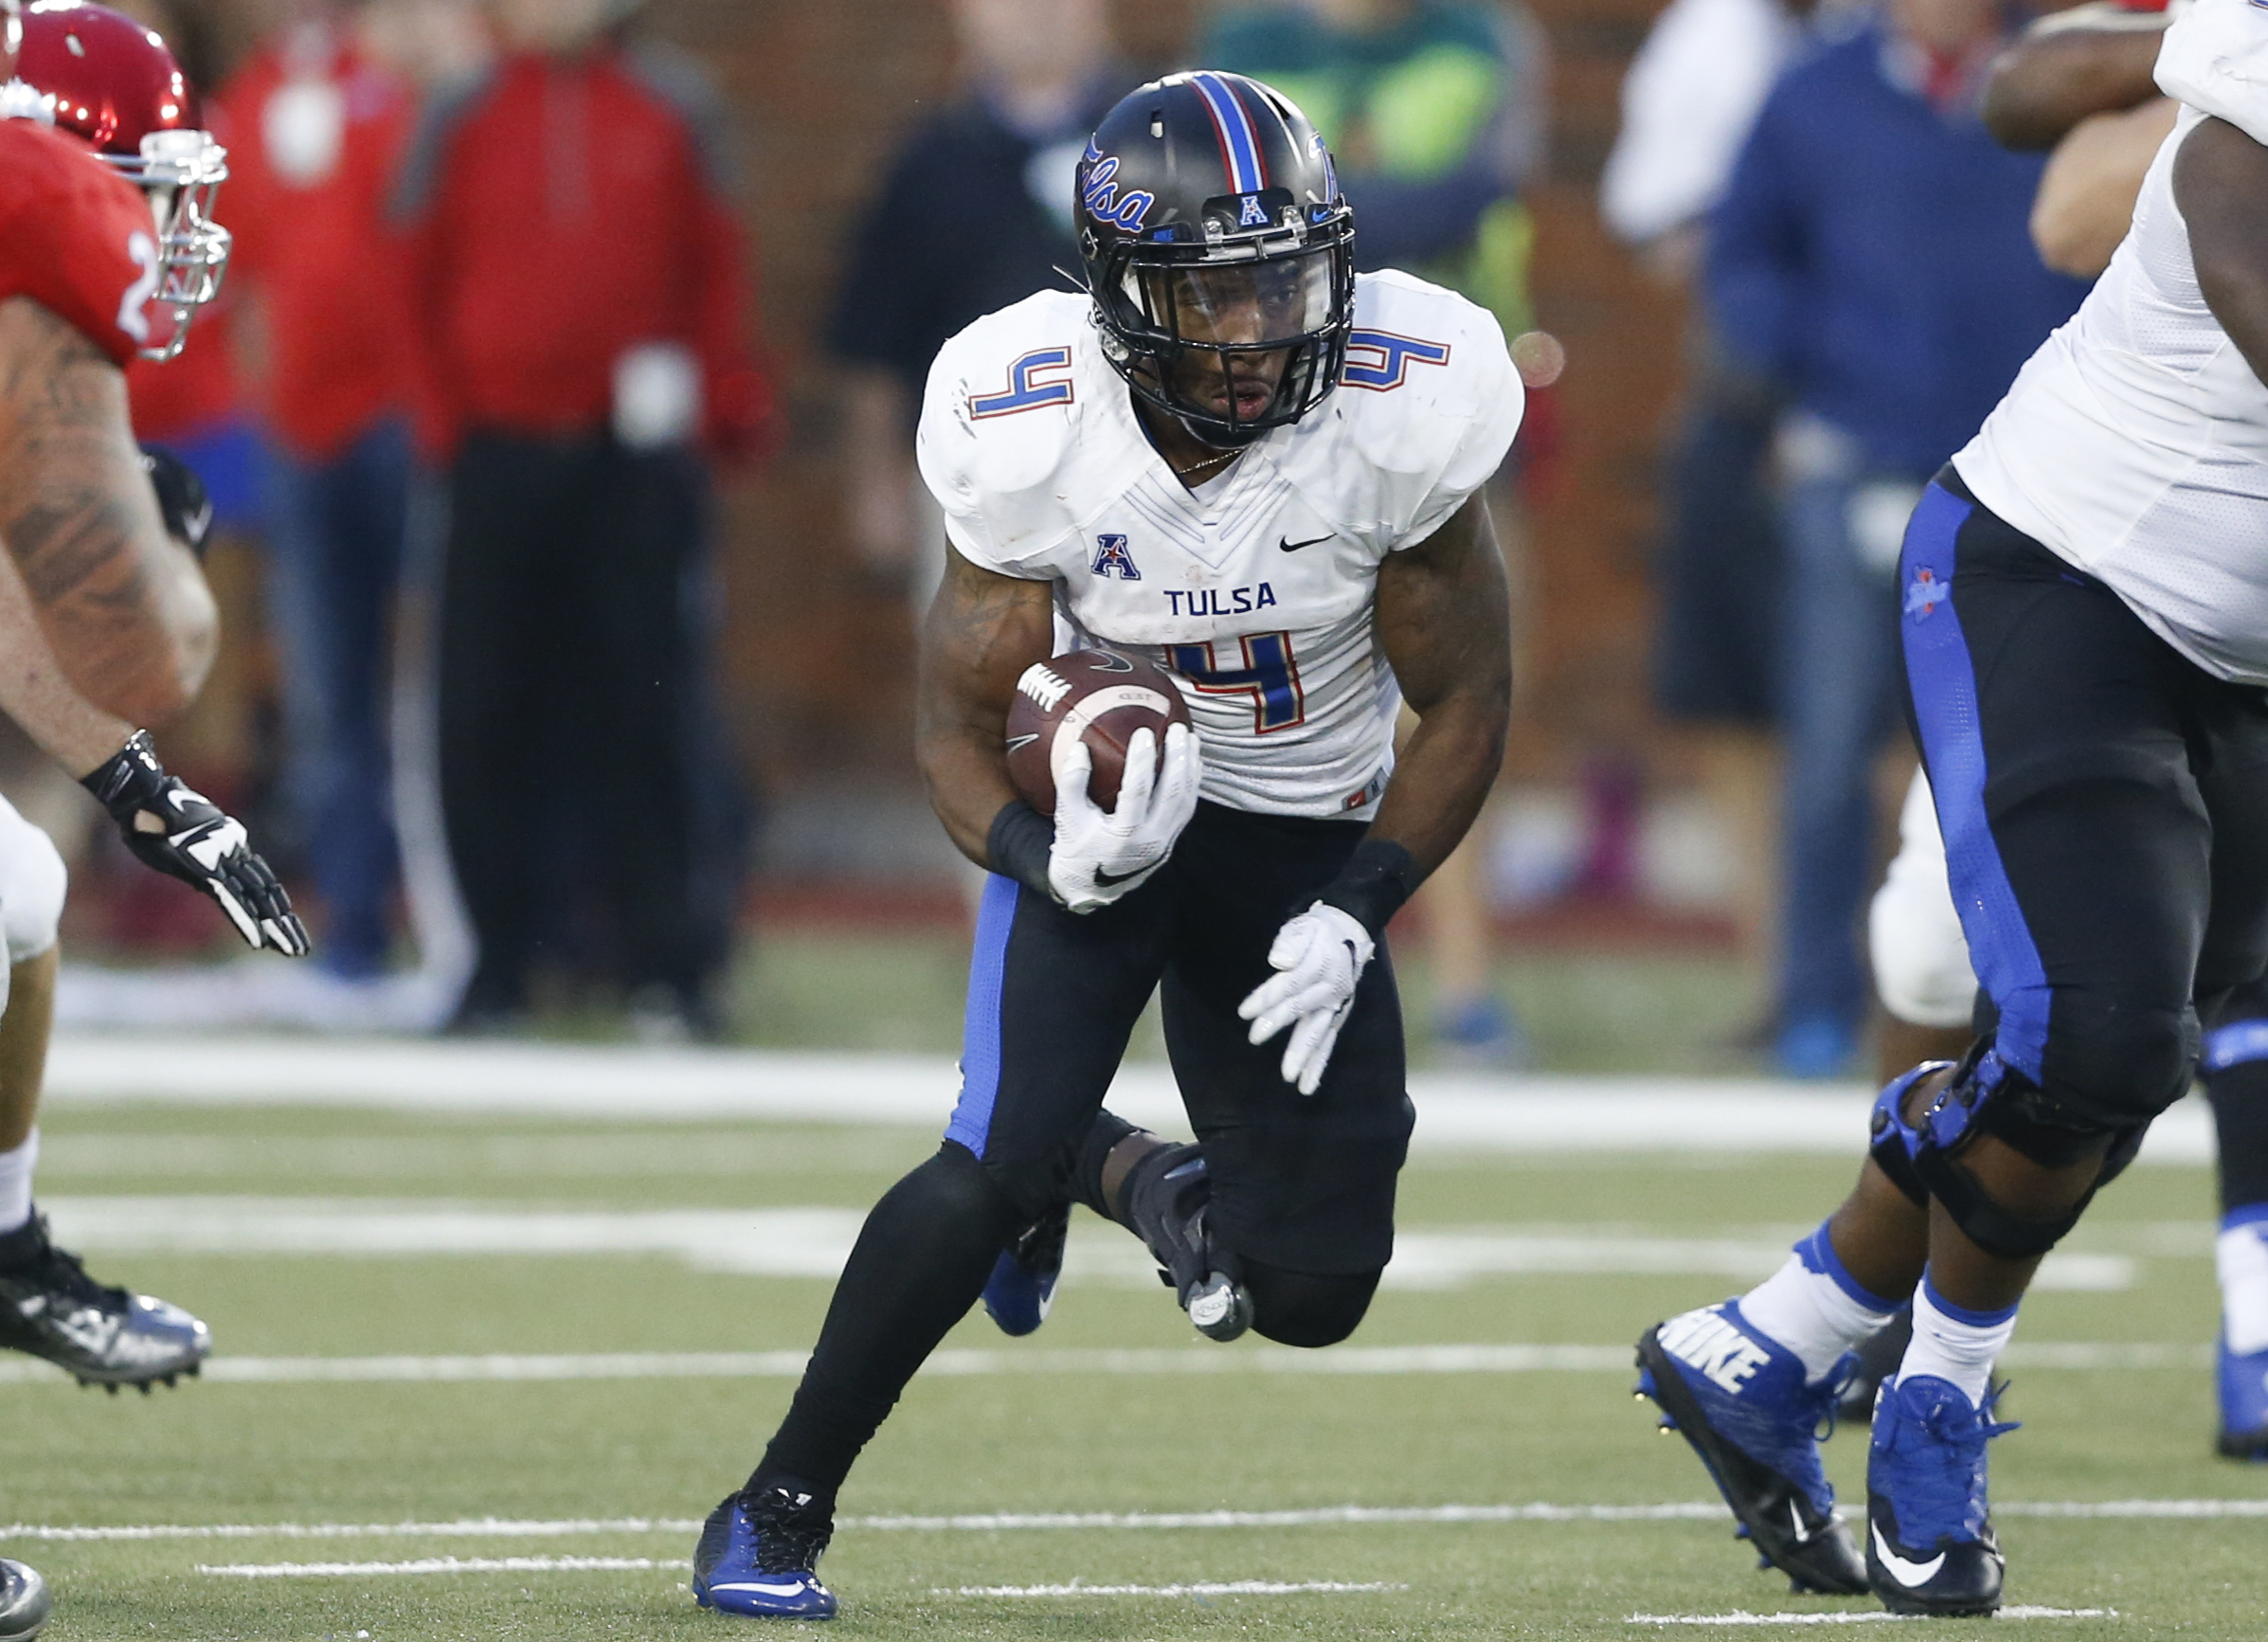 FILE - In this Oct. 31, 2015, file photo, Tulsa running back D'Angelo Brewer (4) runs against SMU during the second half of an NCAA college football game, in Dallas. Brewer rushed for 164 yards and three touchdowns last week on 22 carries. Tulsa will be a